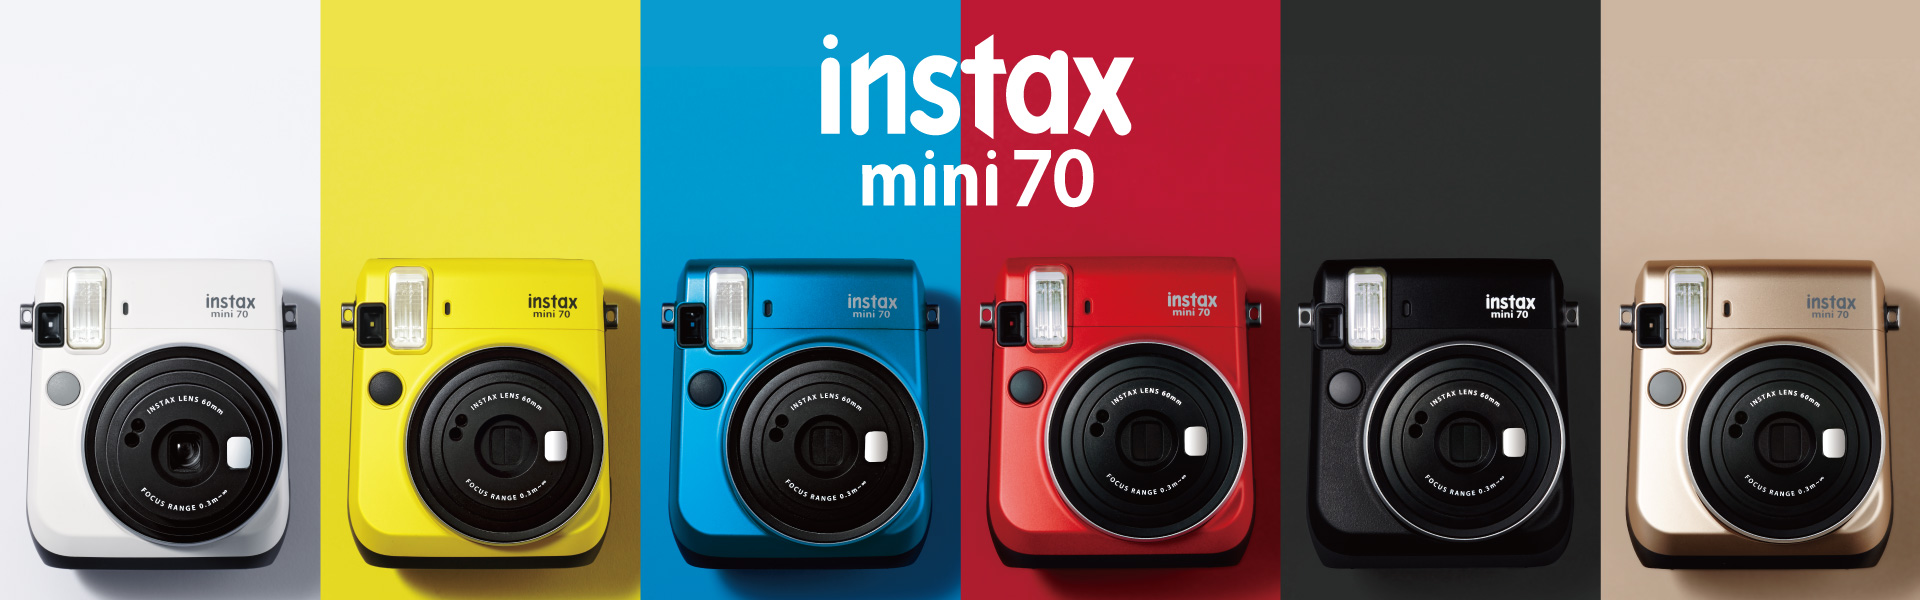 [photo] Instax Mini 70 cameras in white, yellow, blue, red, black, and gold side by side